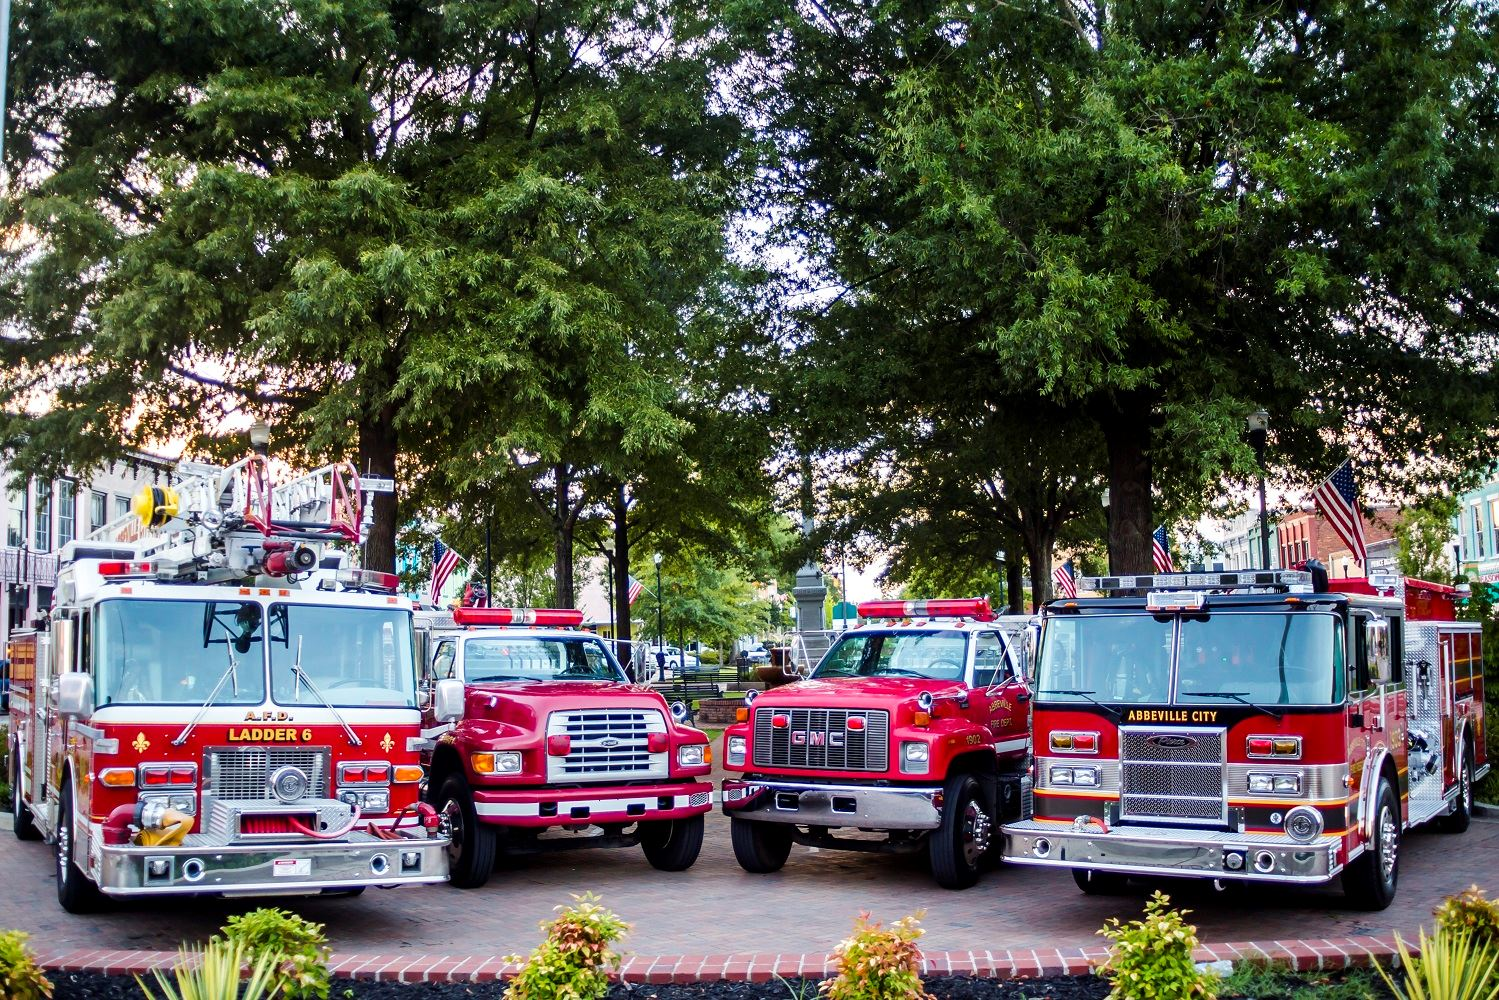 Fire equipment trucks and fire engines